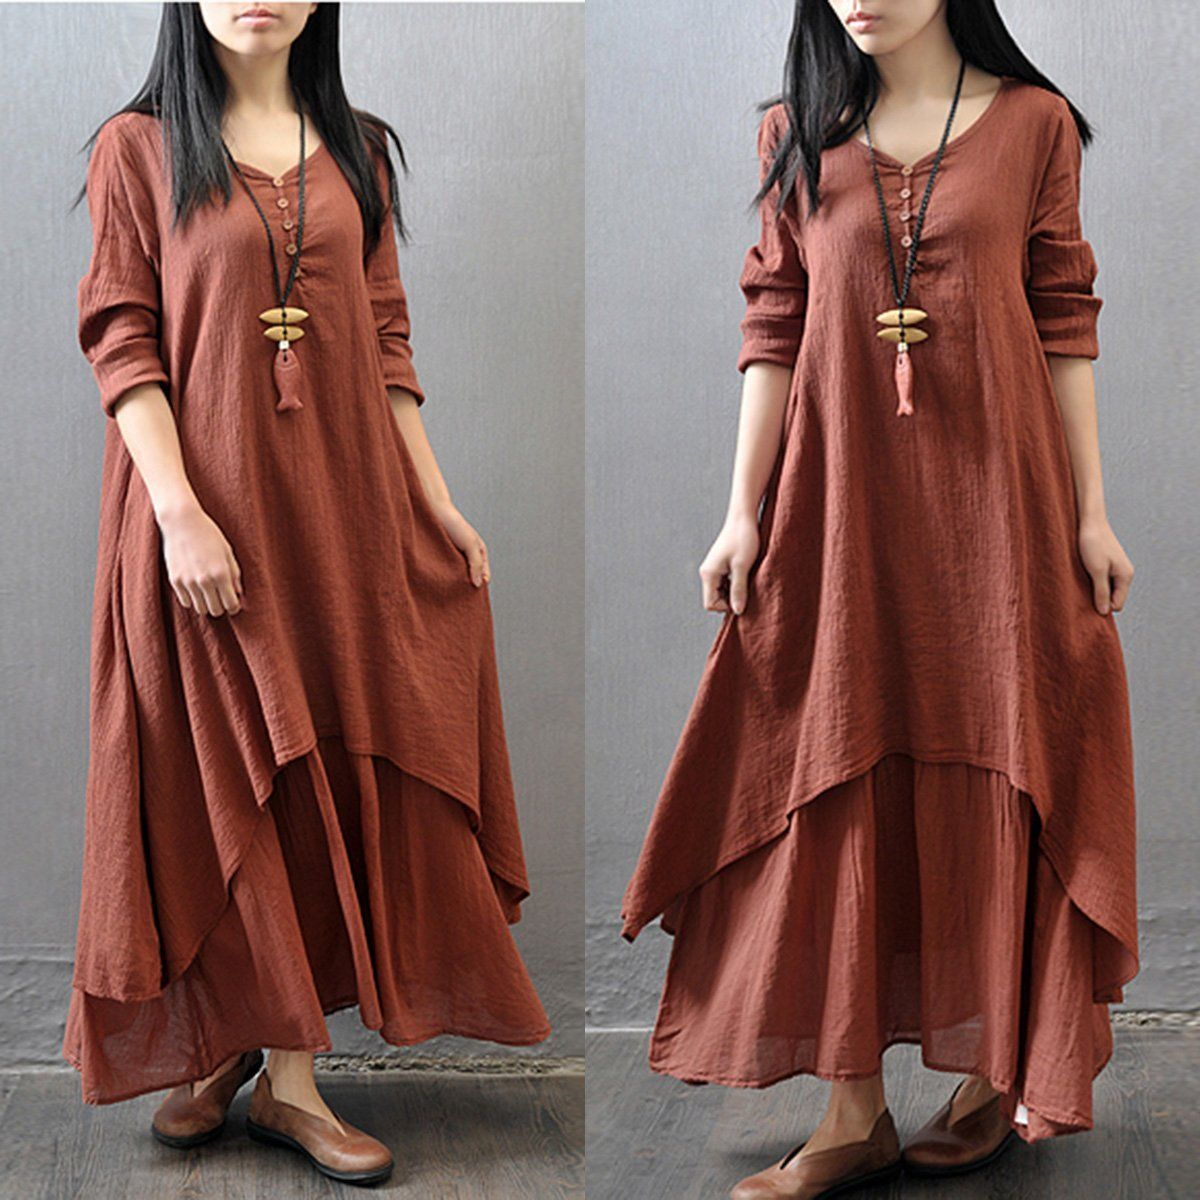 Sexy Women Peasant Ethnic Boho Cotton Linen Long Sleeve Loose Solid Plain Maxi Dress Women Dresses